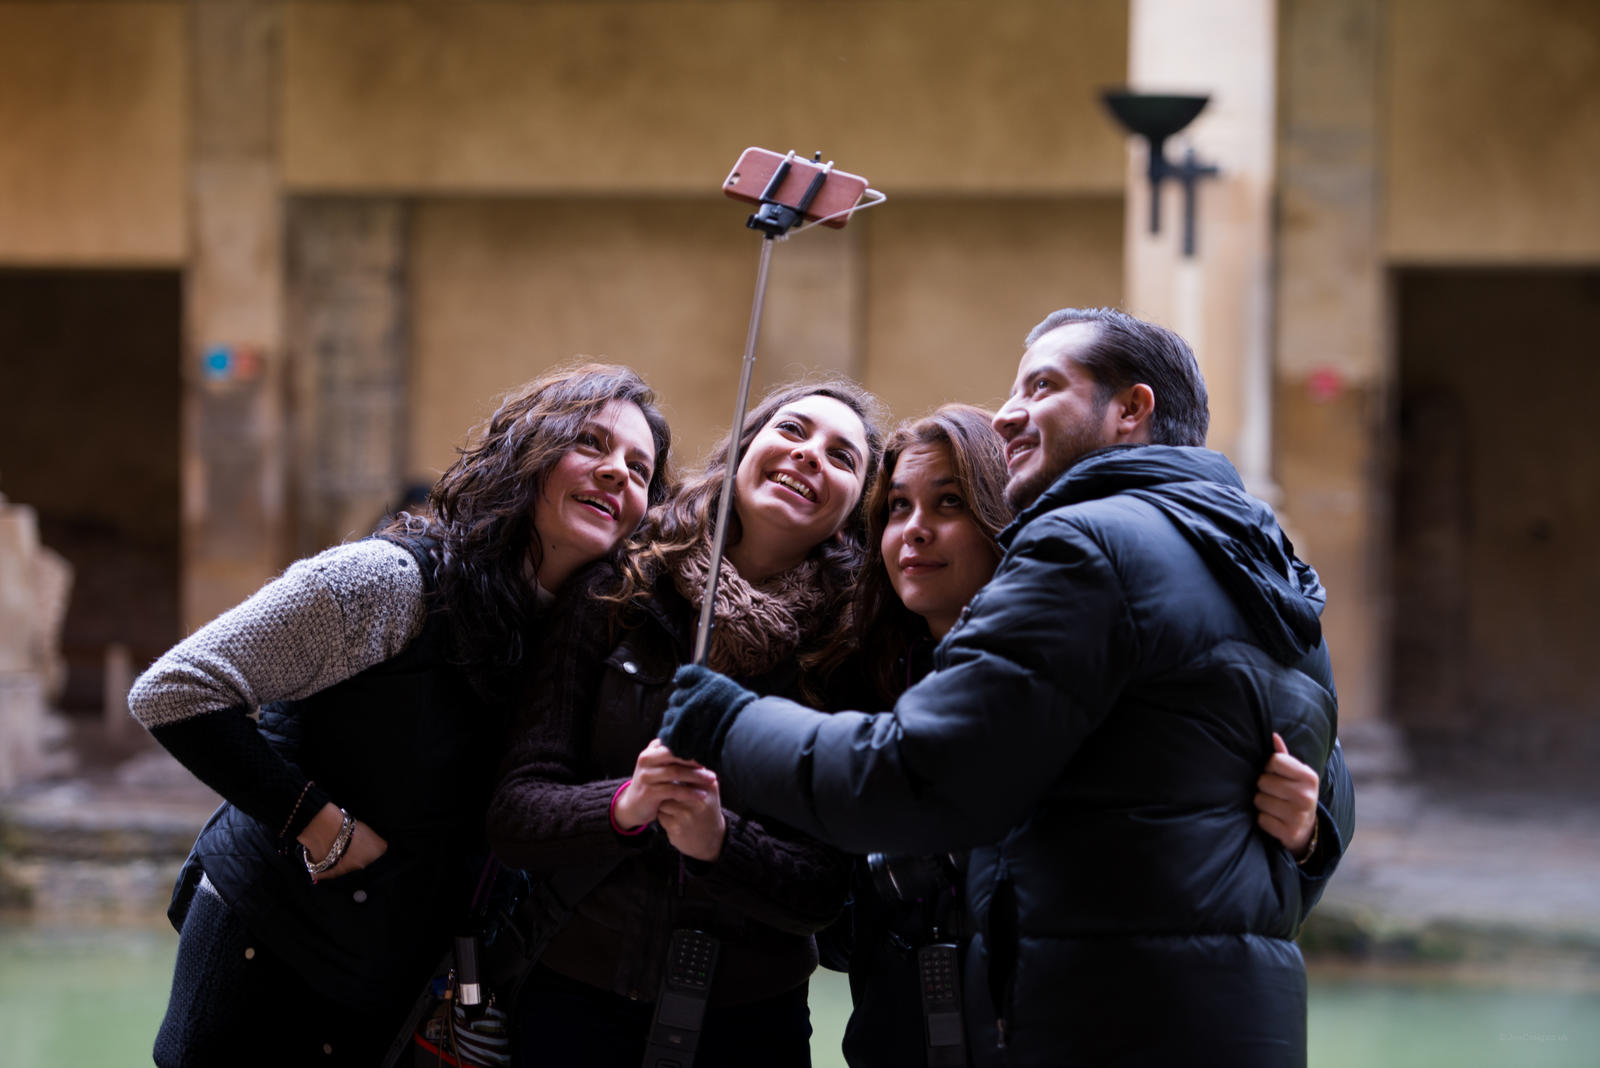 Image: Visitors taking a selfie at the Roman Baths